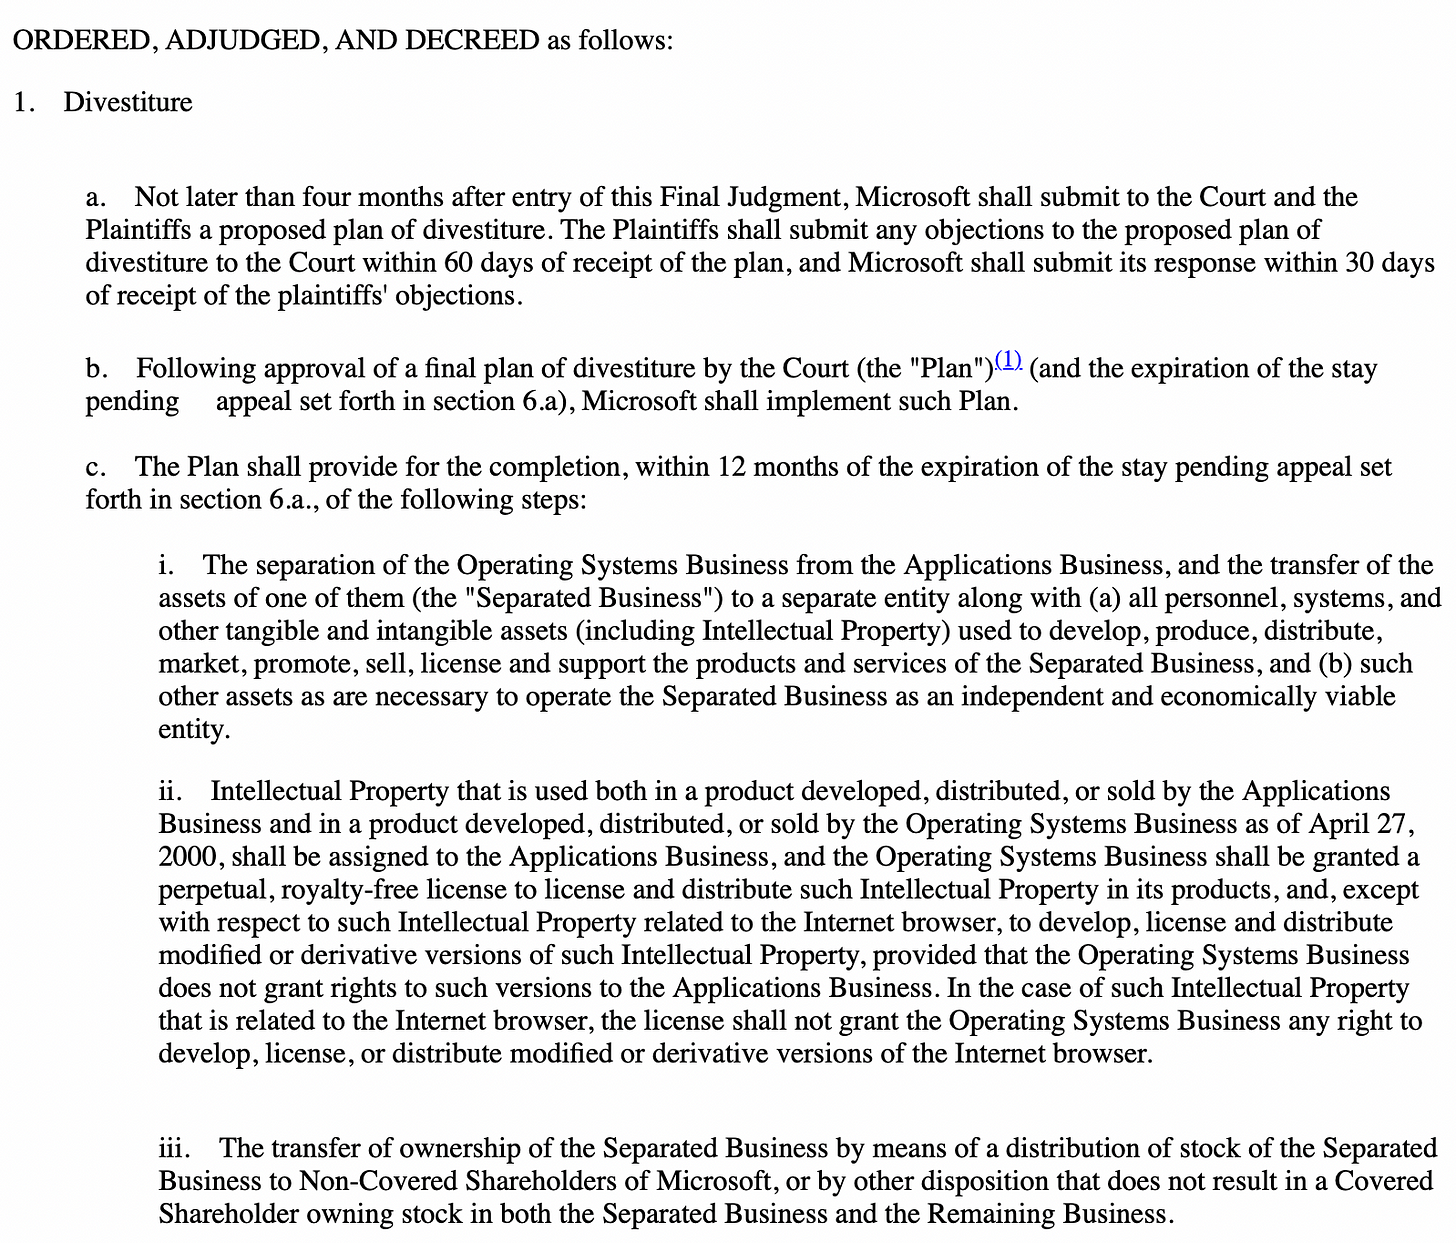 """ORDERED, ADJUDGED, AND DECREED as follows:  1.    Divestiture     a.    Not later than four months after entry of this Final Judgment, Microsoft shall submit to the Court and the Plaintiffs a proposed plan of divestiture. The Plaintiffs shall submit any objections to the proposed plan of divestiture to the Court within 60 days of receipt of the plan, and Microsoft shall submit its response within 30 days of receipt of the plaintiffs' objections.   b.    Following approval of a final plan of divestiture by the Court (the """"Plan"""")(1) (and the expiration of the stay pending     appeal set forth in section 6.a), Microsoft shall implement such Plan.   c.    The Plan shall provide for the completion, within 12 months of the expiration of the stay pending appeal set forth in section 6.a., of the following steps:    i.    The separation of the Operating Systems Business from the Applications Business, and the transfer of the assets of one of them (the """"Separated Business"""") to a separate entity along with (a) all personnel, systems, and other tangible and intangible assets (including Intellectual Property) used to develop, produce, distribute, market, promote, sell, license and support the products and services of the Separated Business, and (b) such other assets as are necessary to operate the Separated Business as an independent and economically viable entity. ii.    Intellectual Property that is used both in a product developed, distributed, or sold by the Applications Business and in a product developed, distributed, or sold by the Operating Systems Business as of April 27, 2000, shall be assigned to the Applications Business, and the Operating Systems Business shall be granted a perpetual, royalty-free license to license and distribute such Intellectual Property in its products, and, except with respect to such Intellectual Property related to the Internet browser, to develop, license and distribute modified or derivative versions of such Intellectual Property, provided """